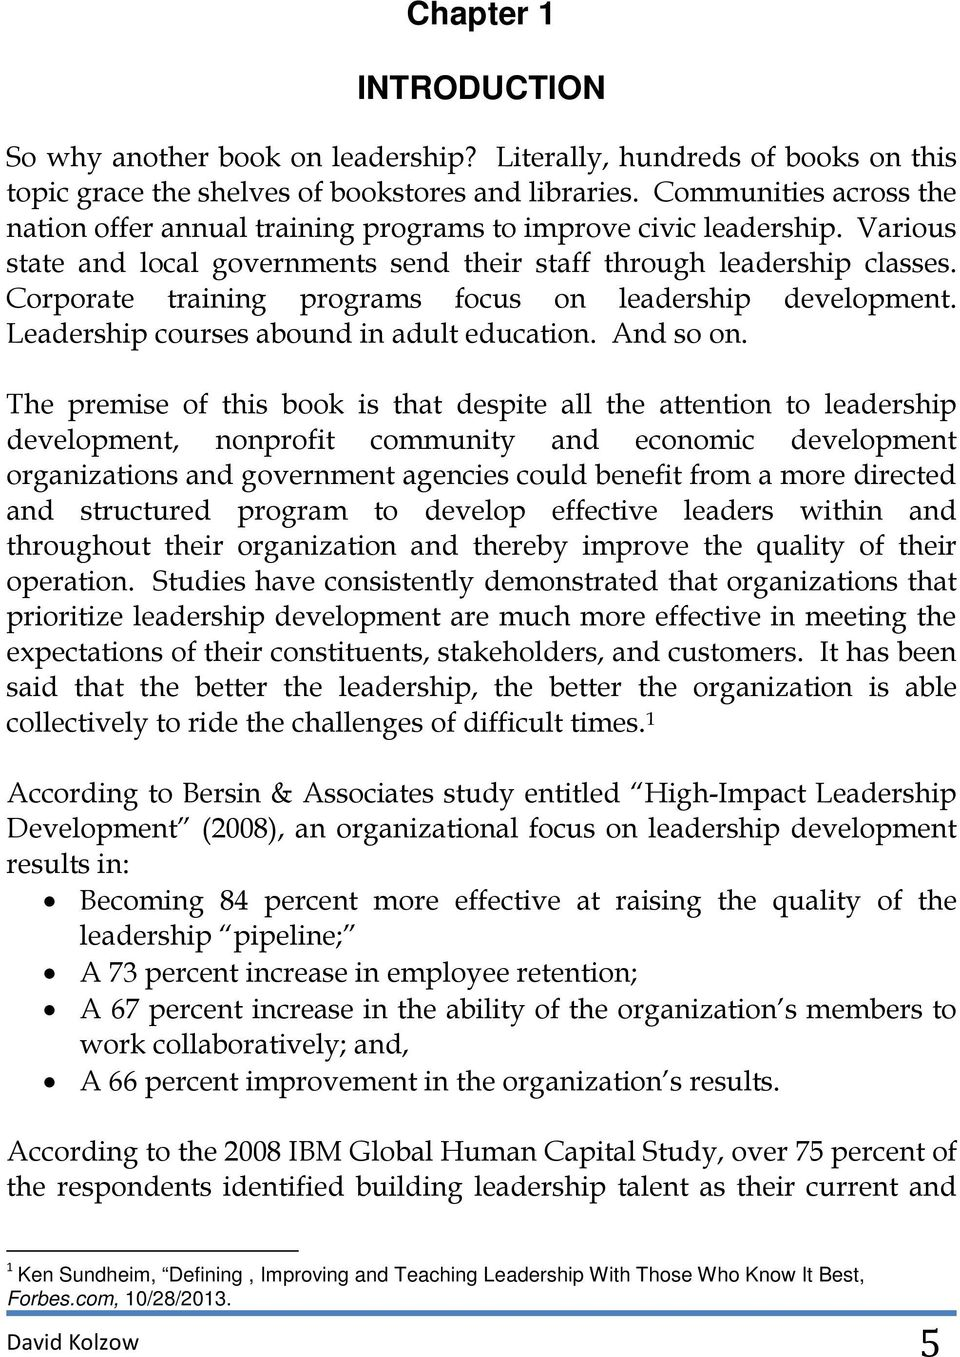 Corporate training programs focus on leadership development. Leadership courses abound in adult education. And so on.